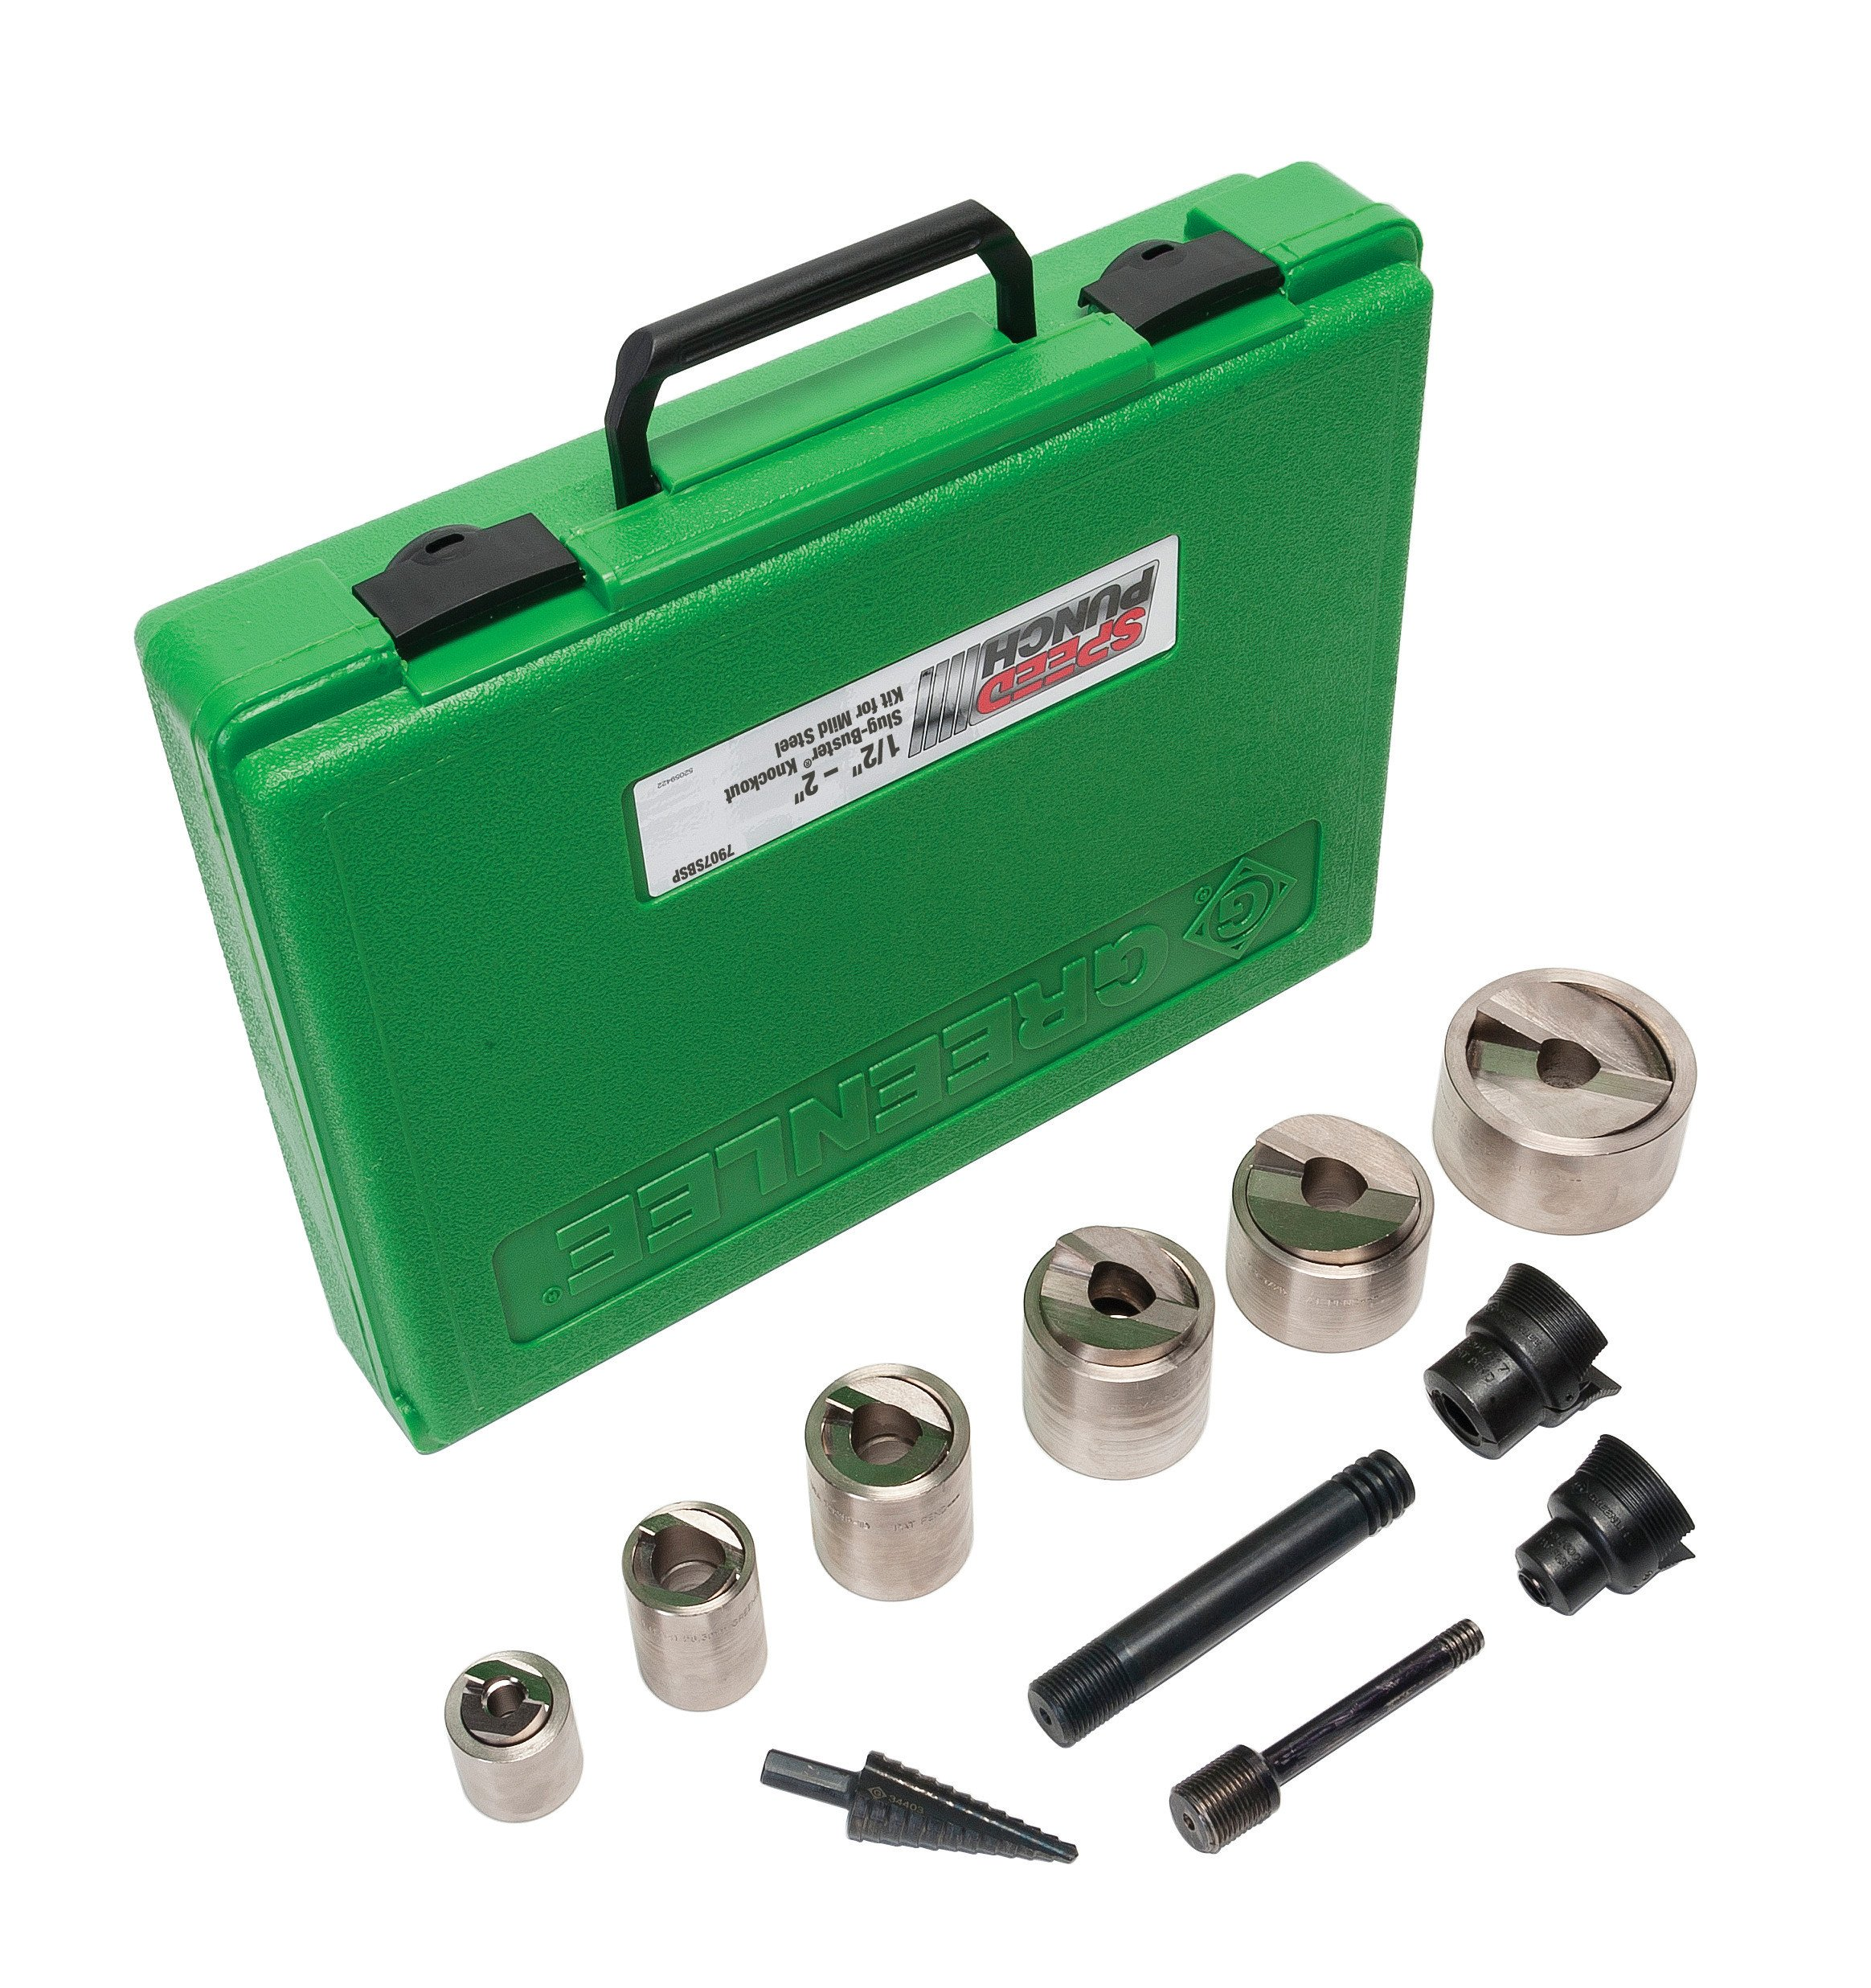 Greenlee Speed Punch 7907SBSP Kit, 1/2-Inch to 2-Inch Conduit, Mild Steel Without Driver